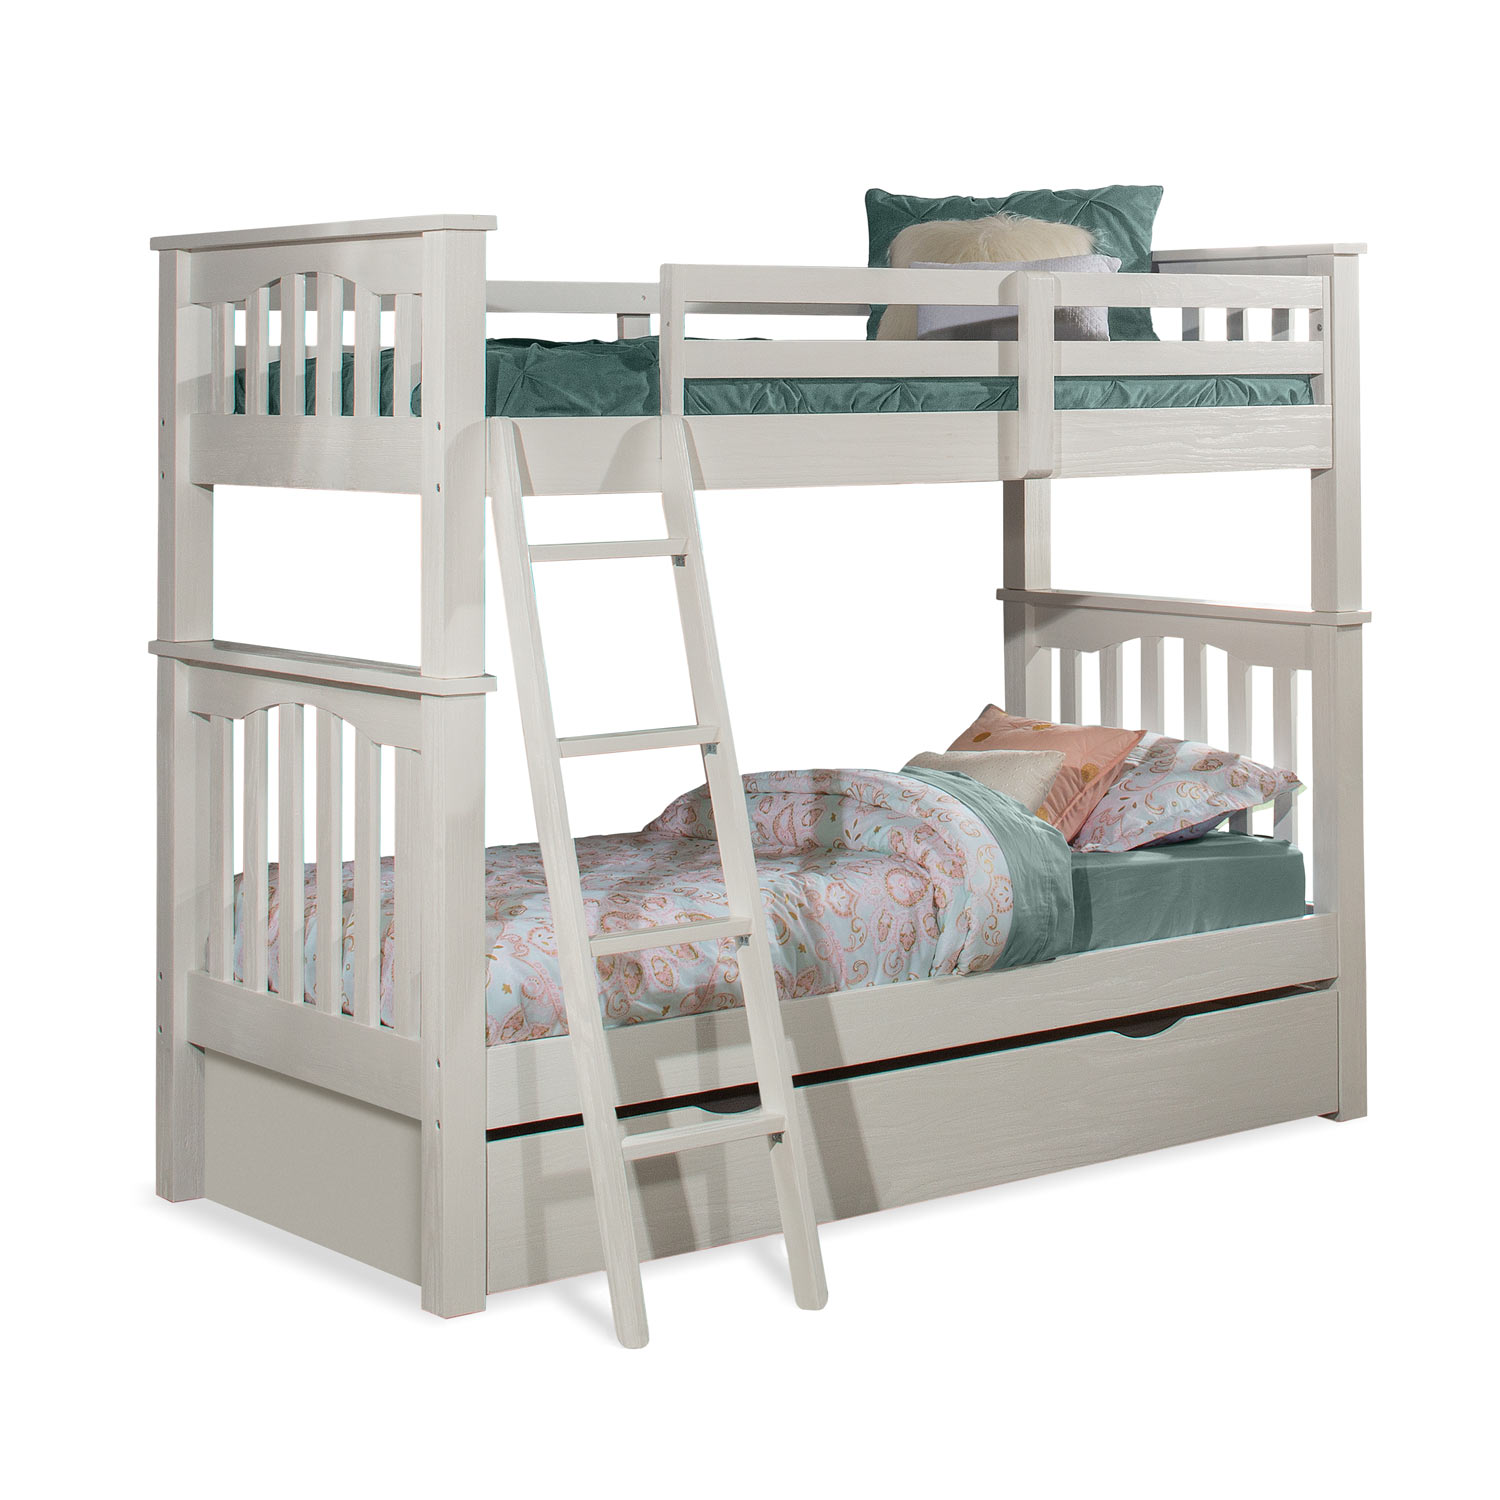 NE Kids Highlands Harper Twin/Twin Bunk Bed with Trundle - White Finish